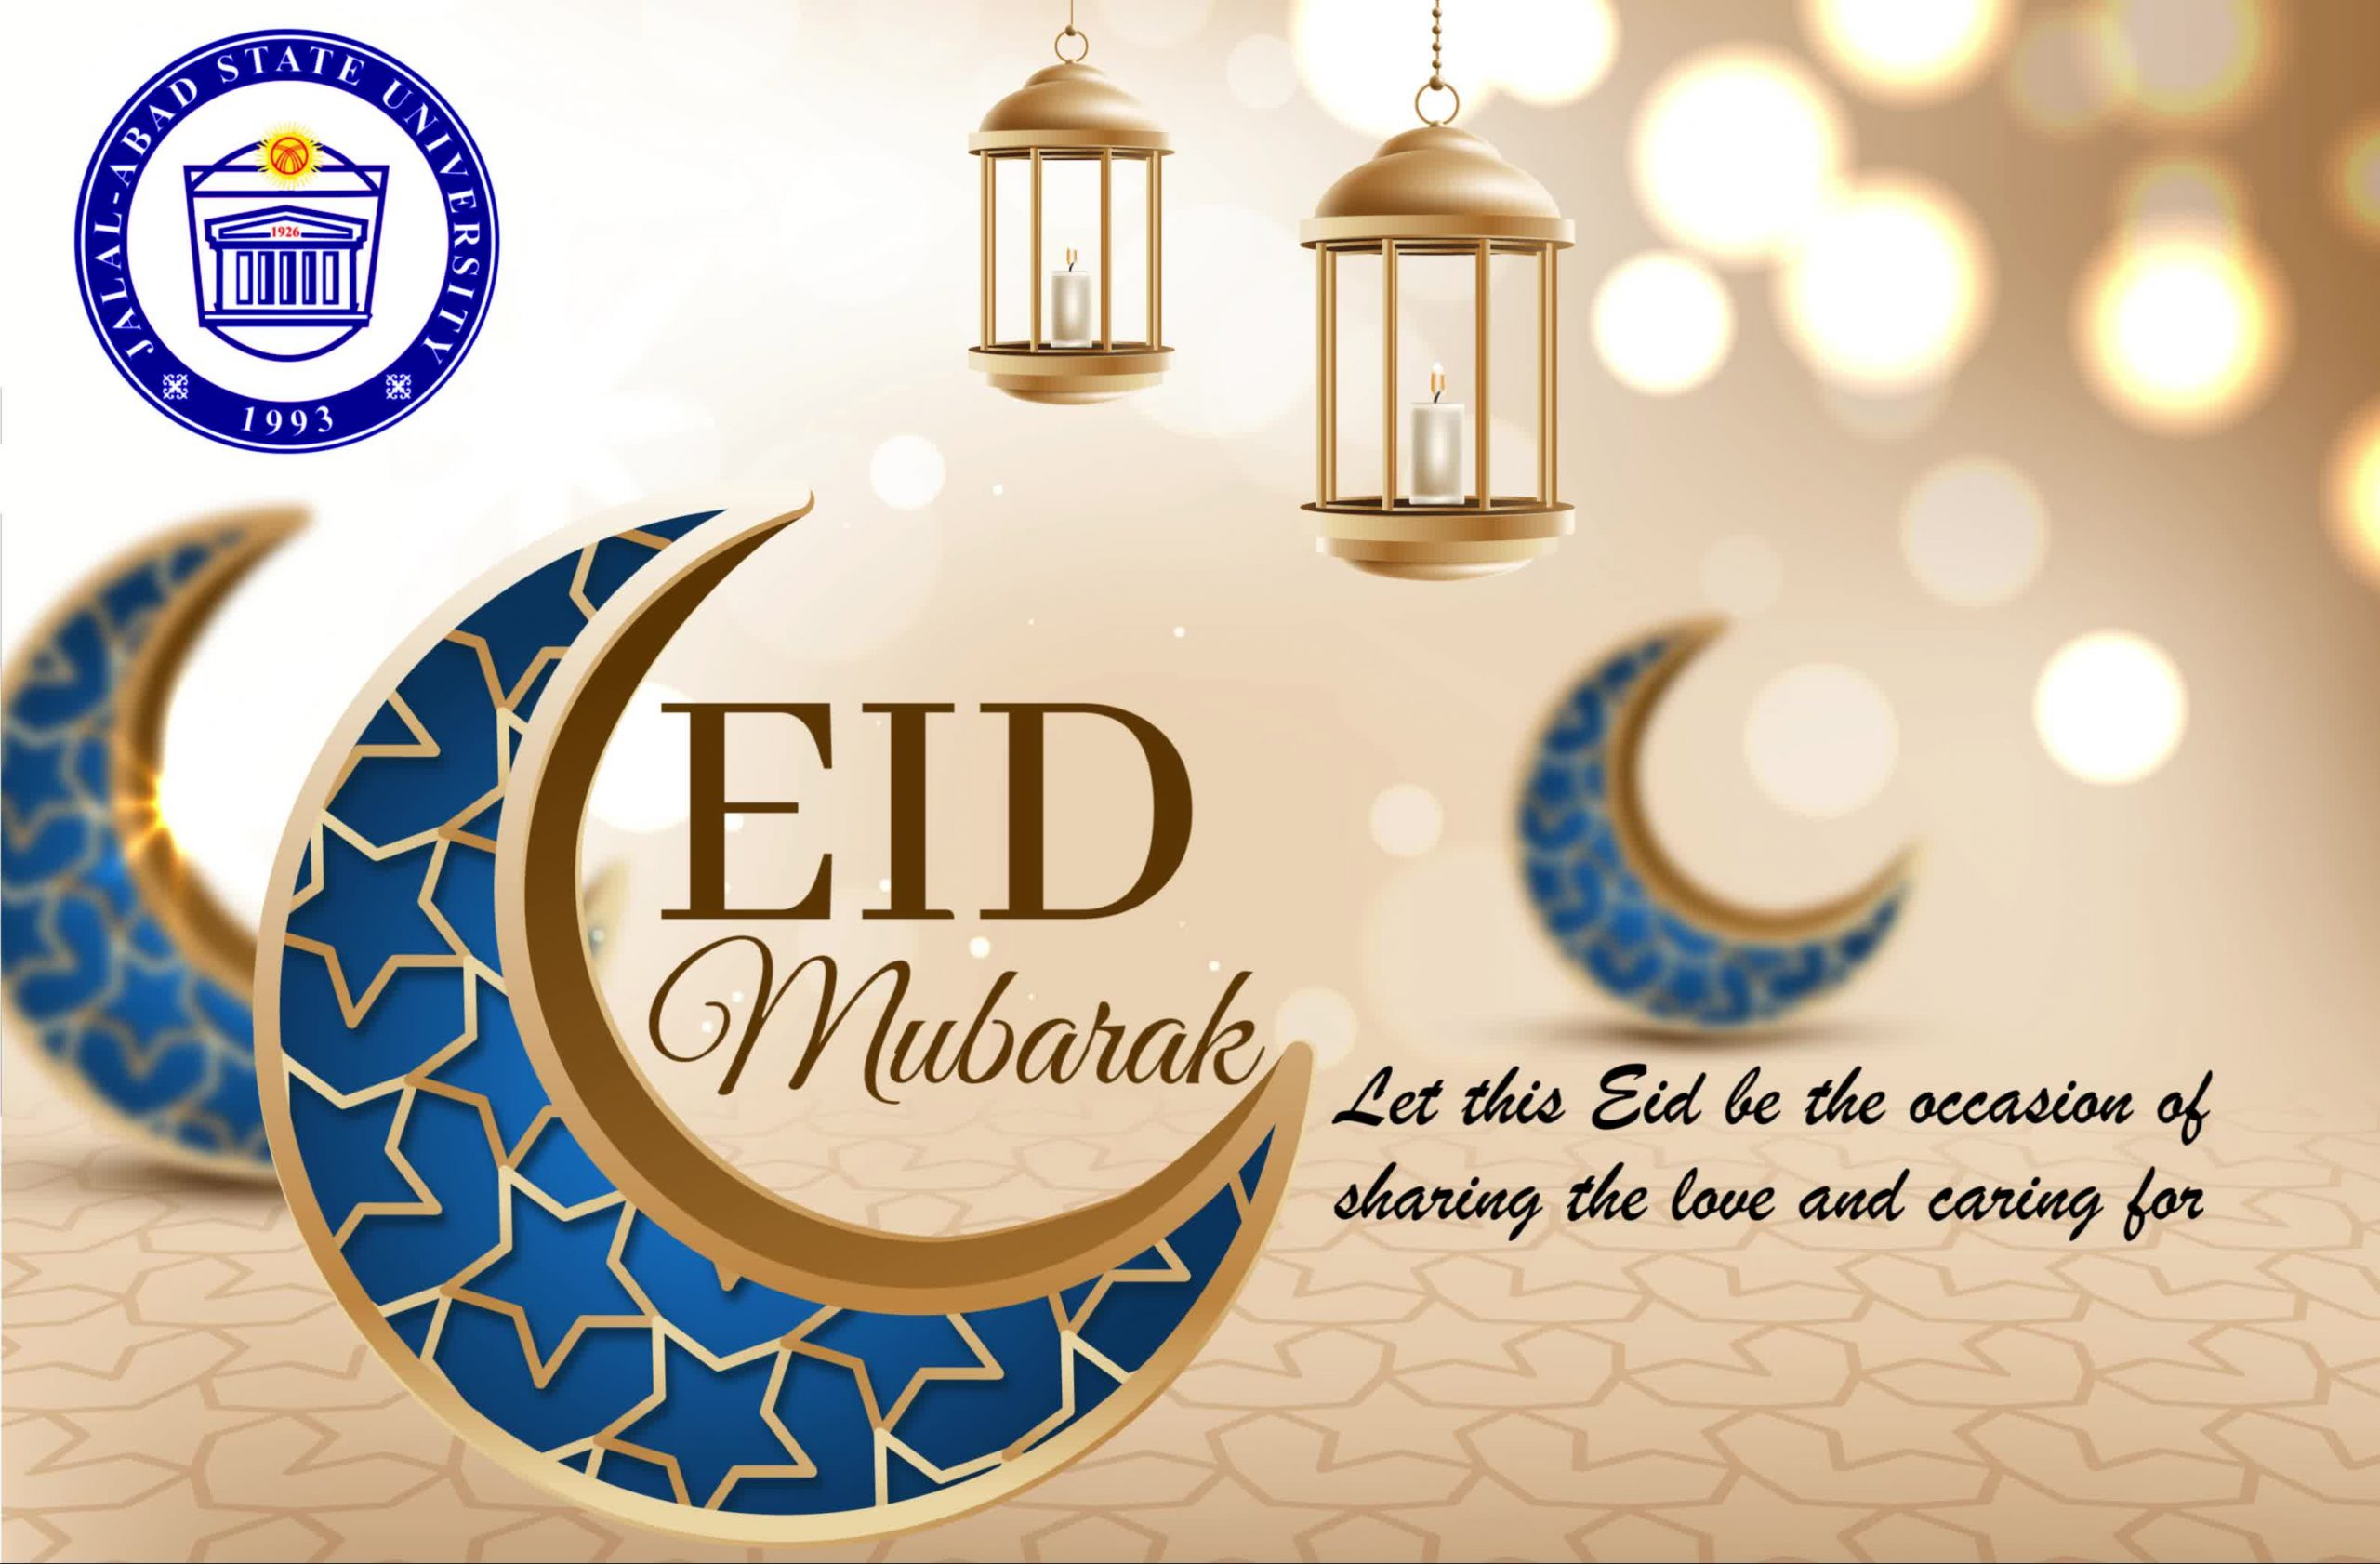 Let this Eid be the occasion of sharing the love and caring for the people who need to be loved and cared. Eid Mubarak to all!